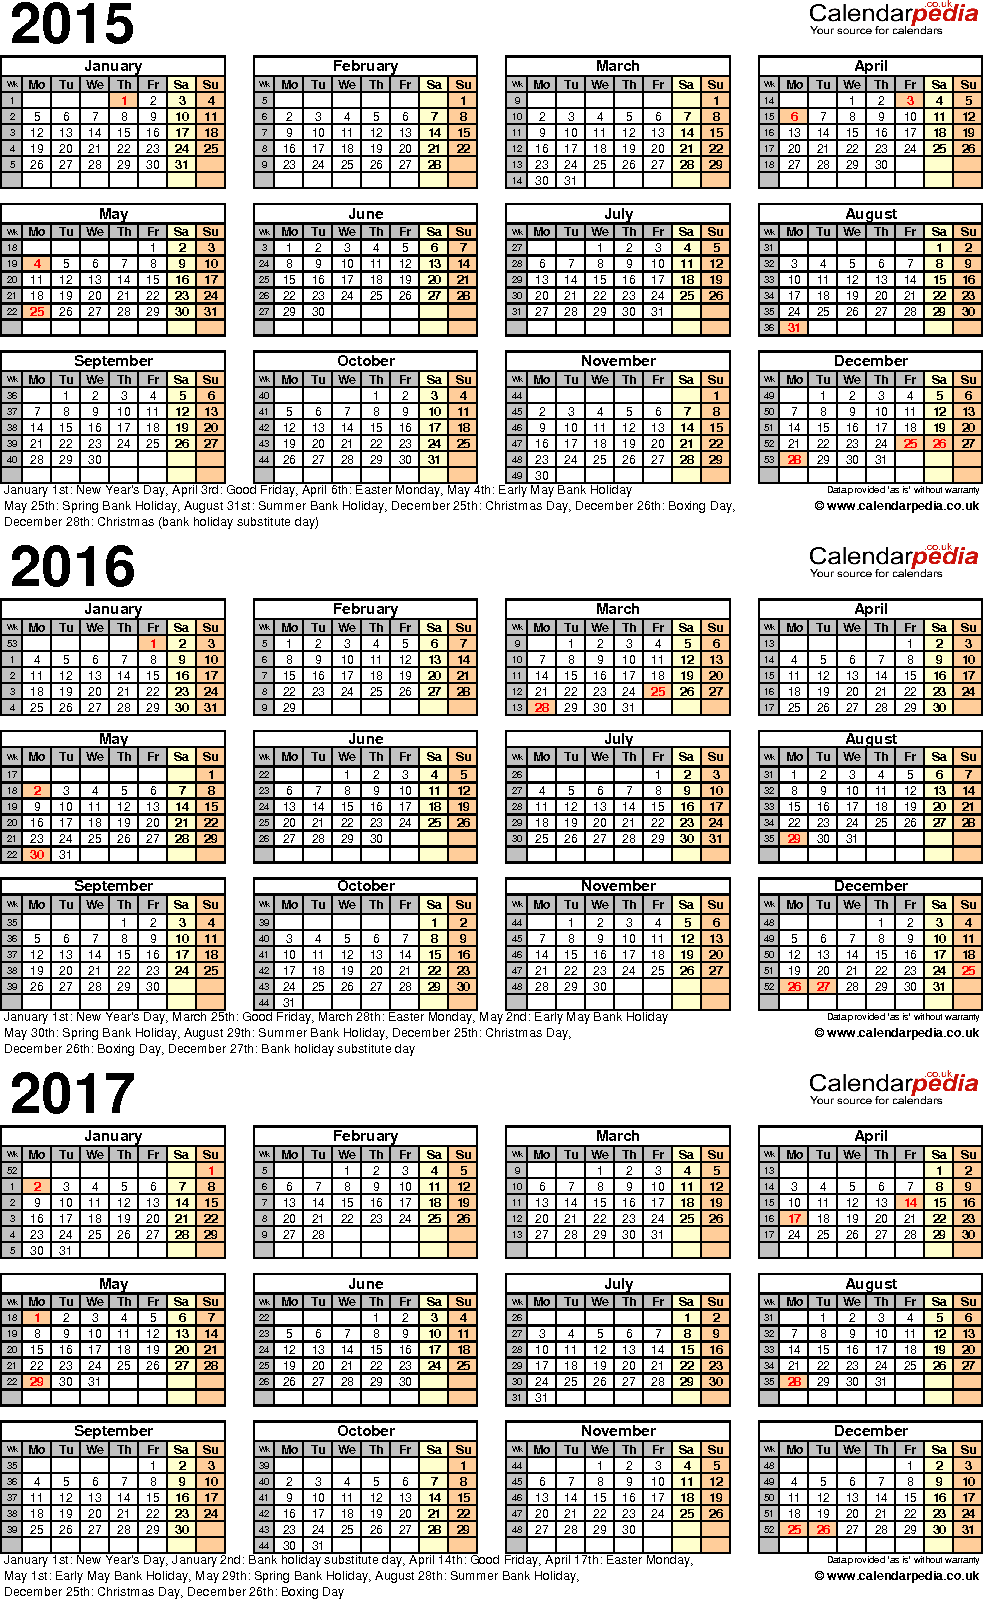 Template 4: PDF template for three year calendar 2015-2017 (portrait orientation, 1 page, A4)